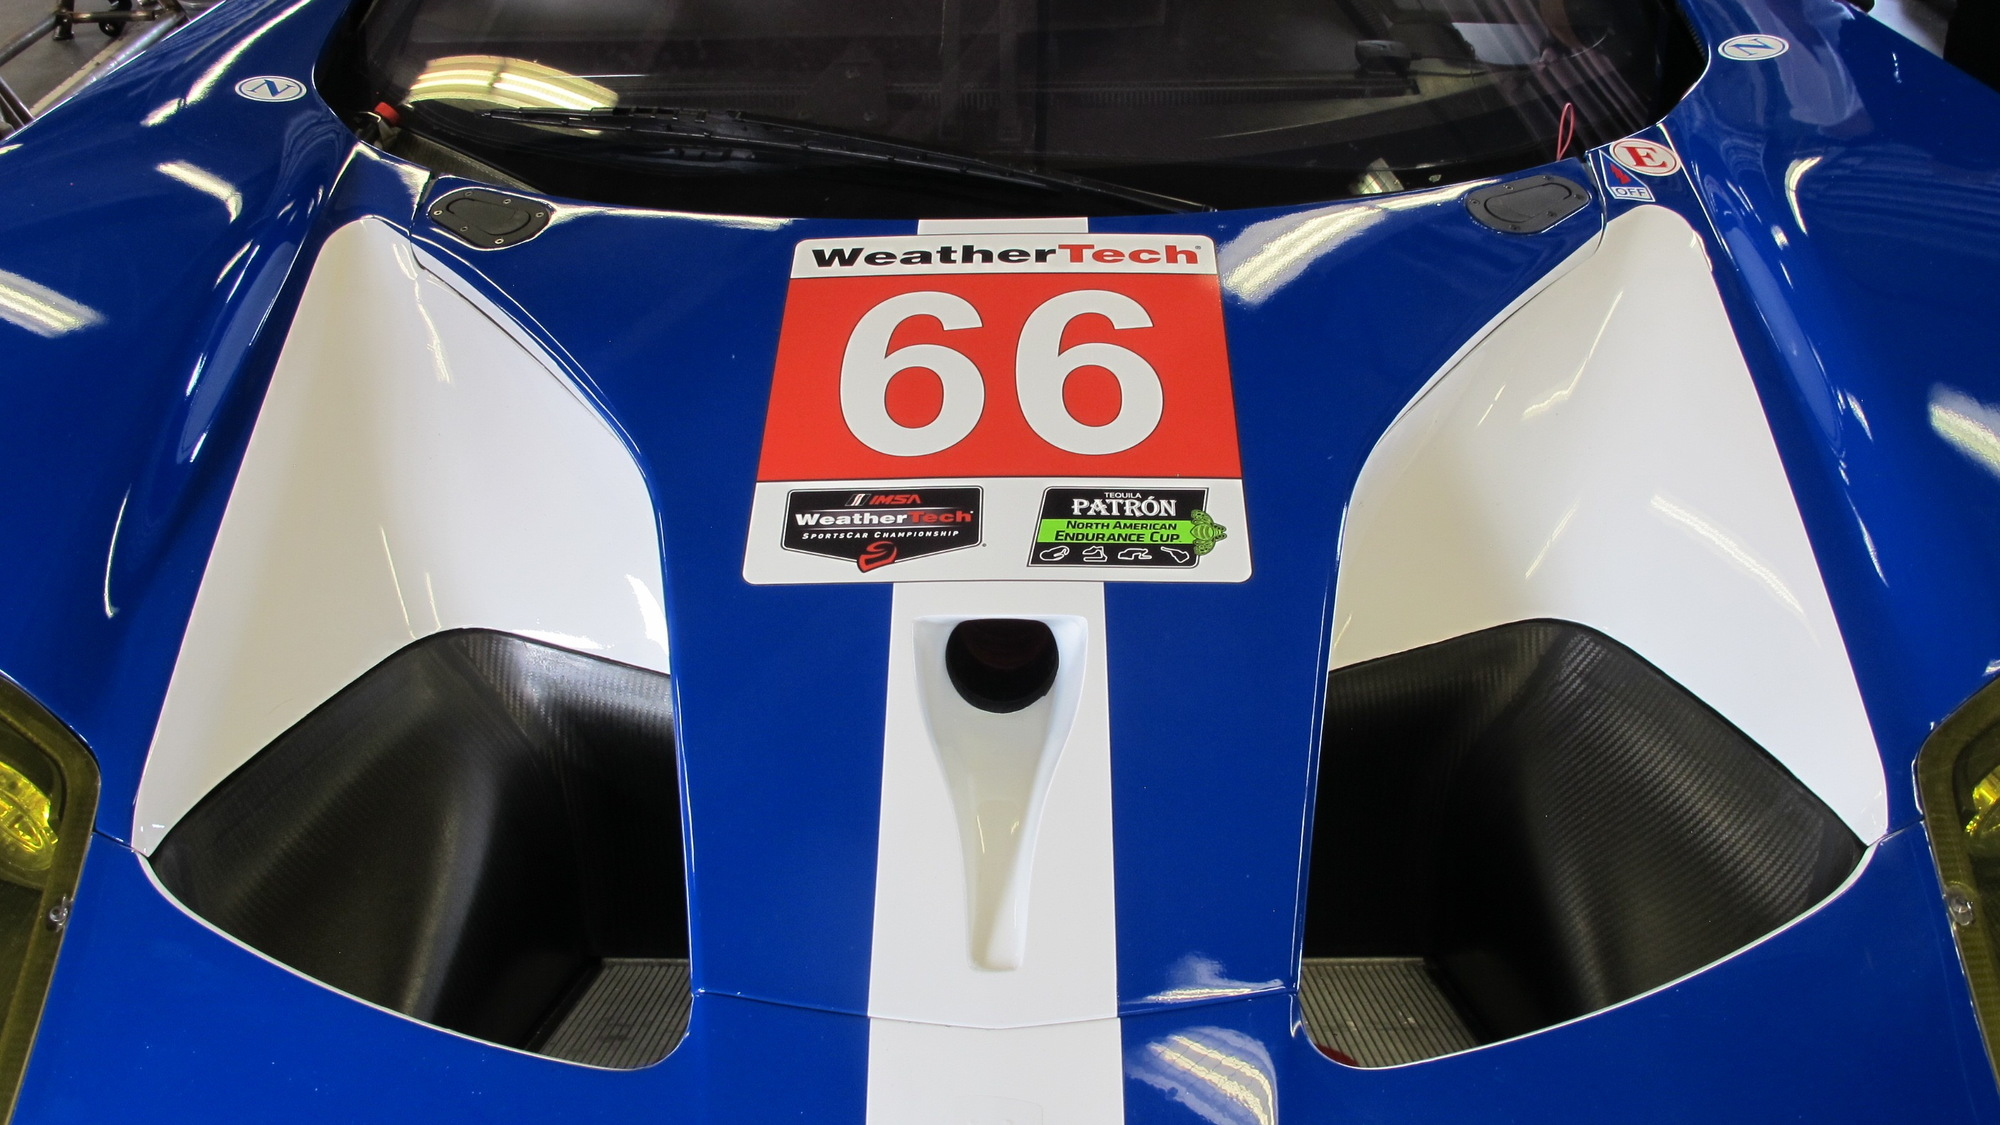 Ford GT race car, 2016 Rolex 24 At Daytona